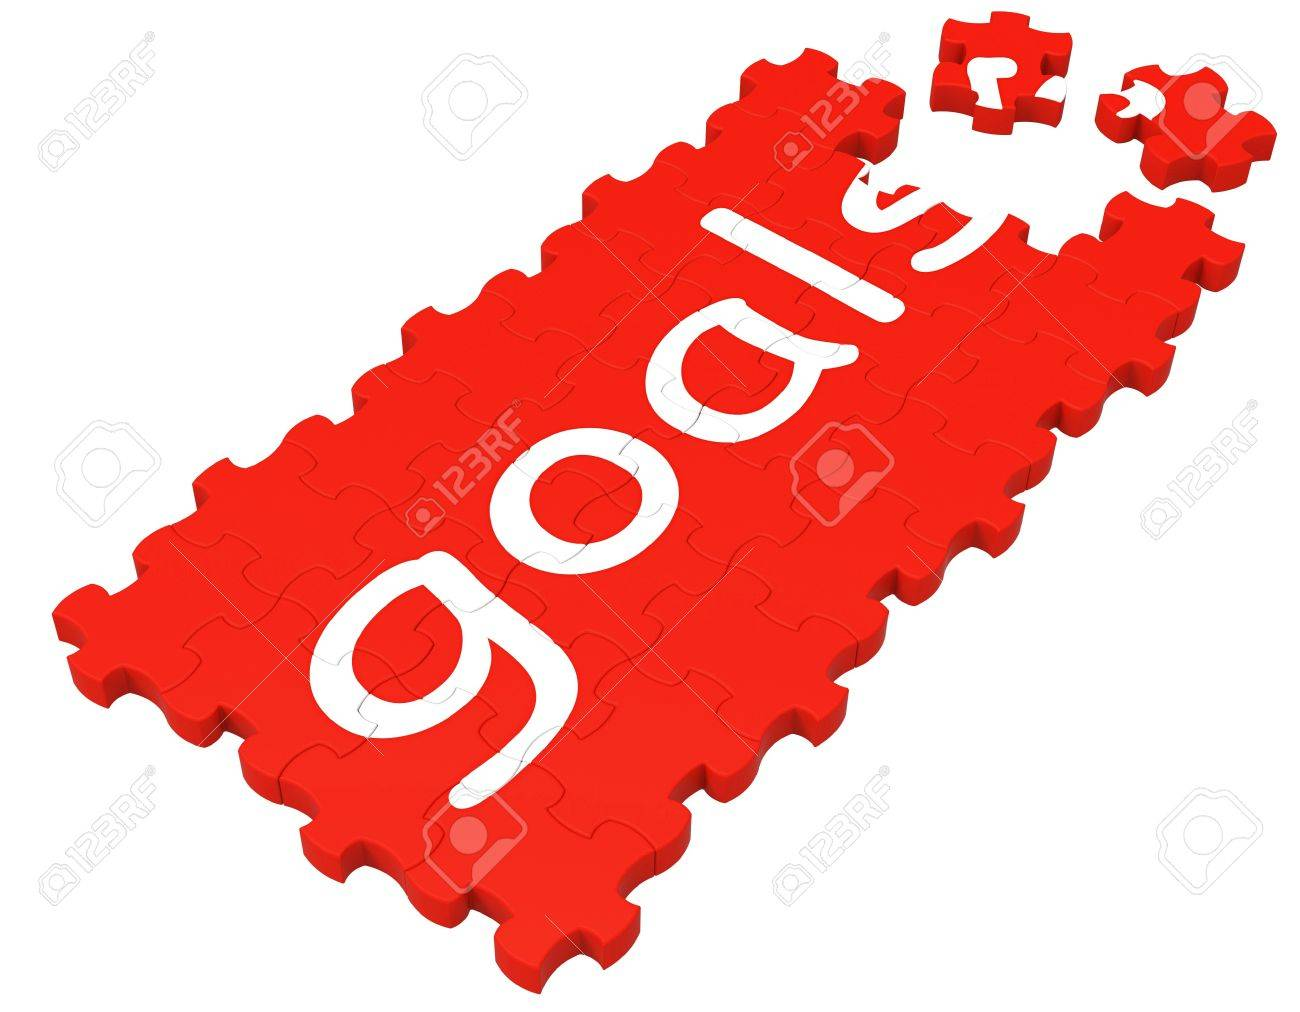 goals puzzle shows aspirations objectives and ambitions stock goals puzzle shows aspirations objectives and ambitions stock photo 16517679